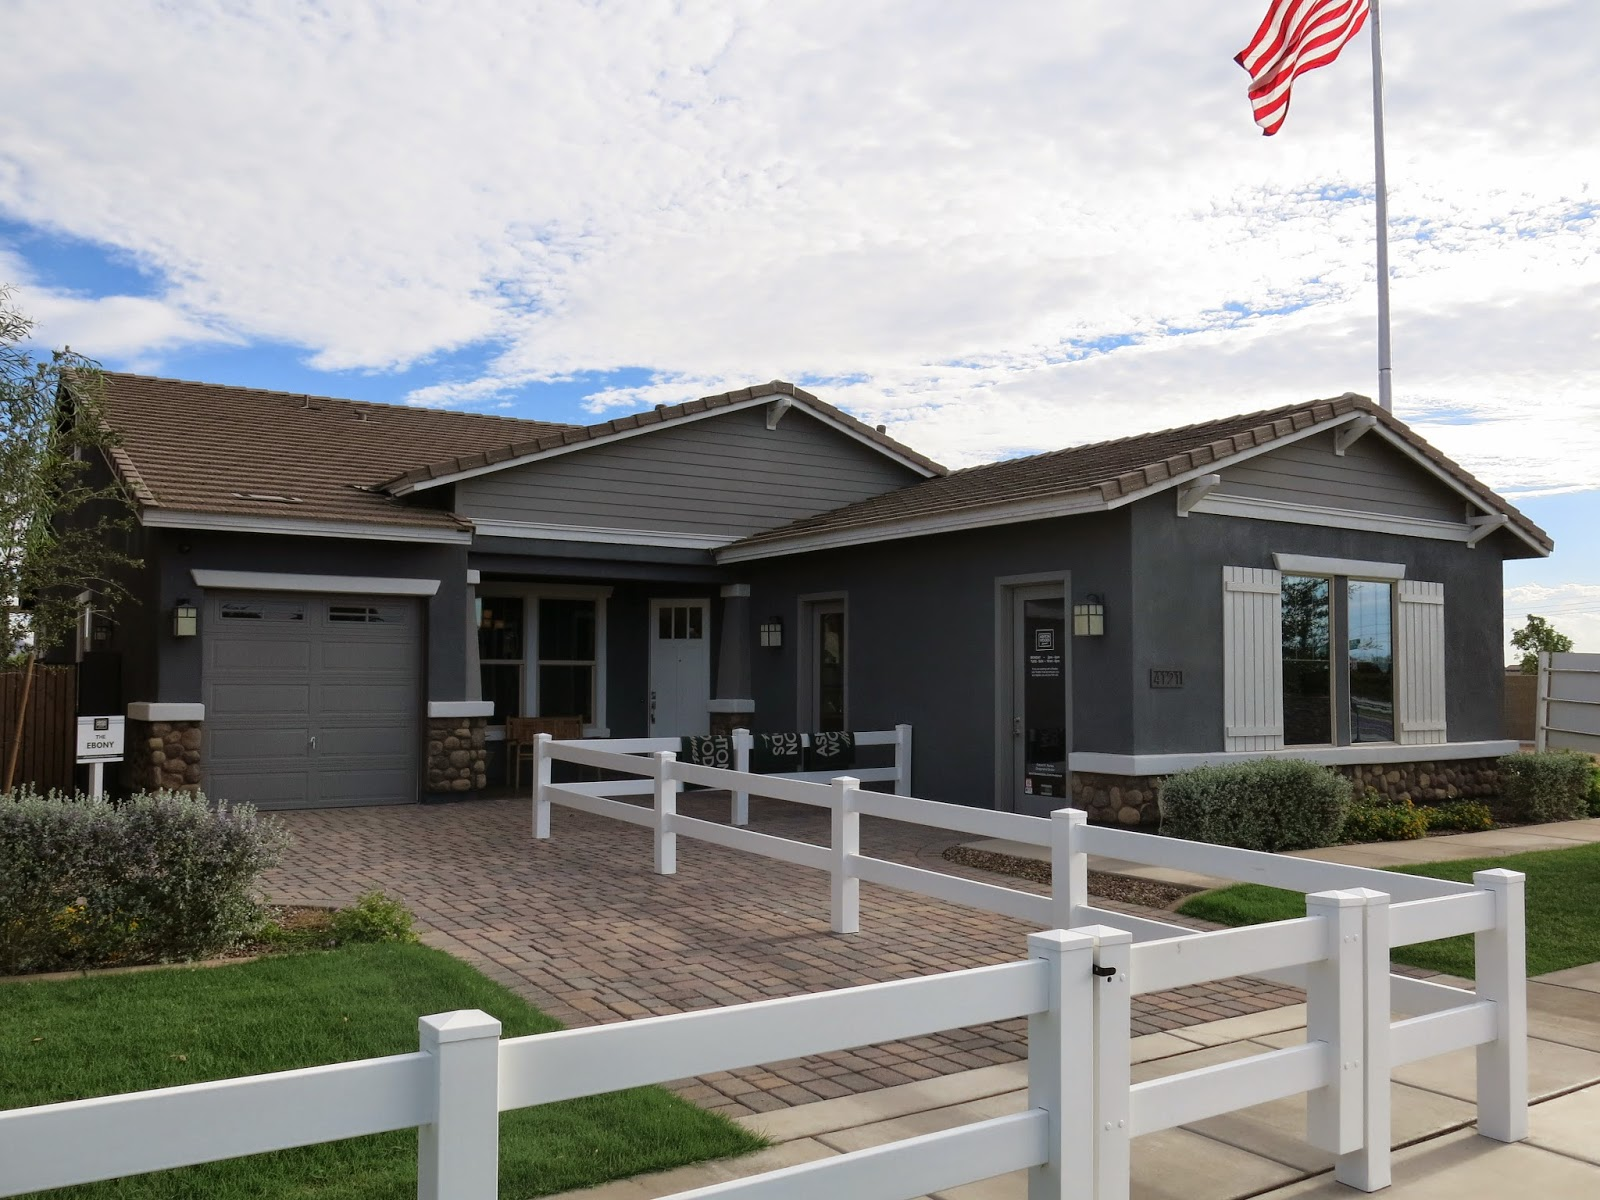 Ashton Woods Offers Six Diffe Floor Plans With A Variety Of Design Options To Best Fit Your Lifestyle